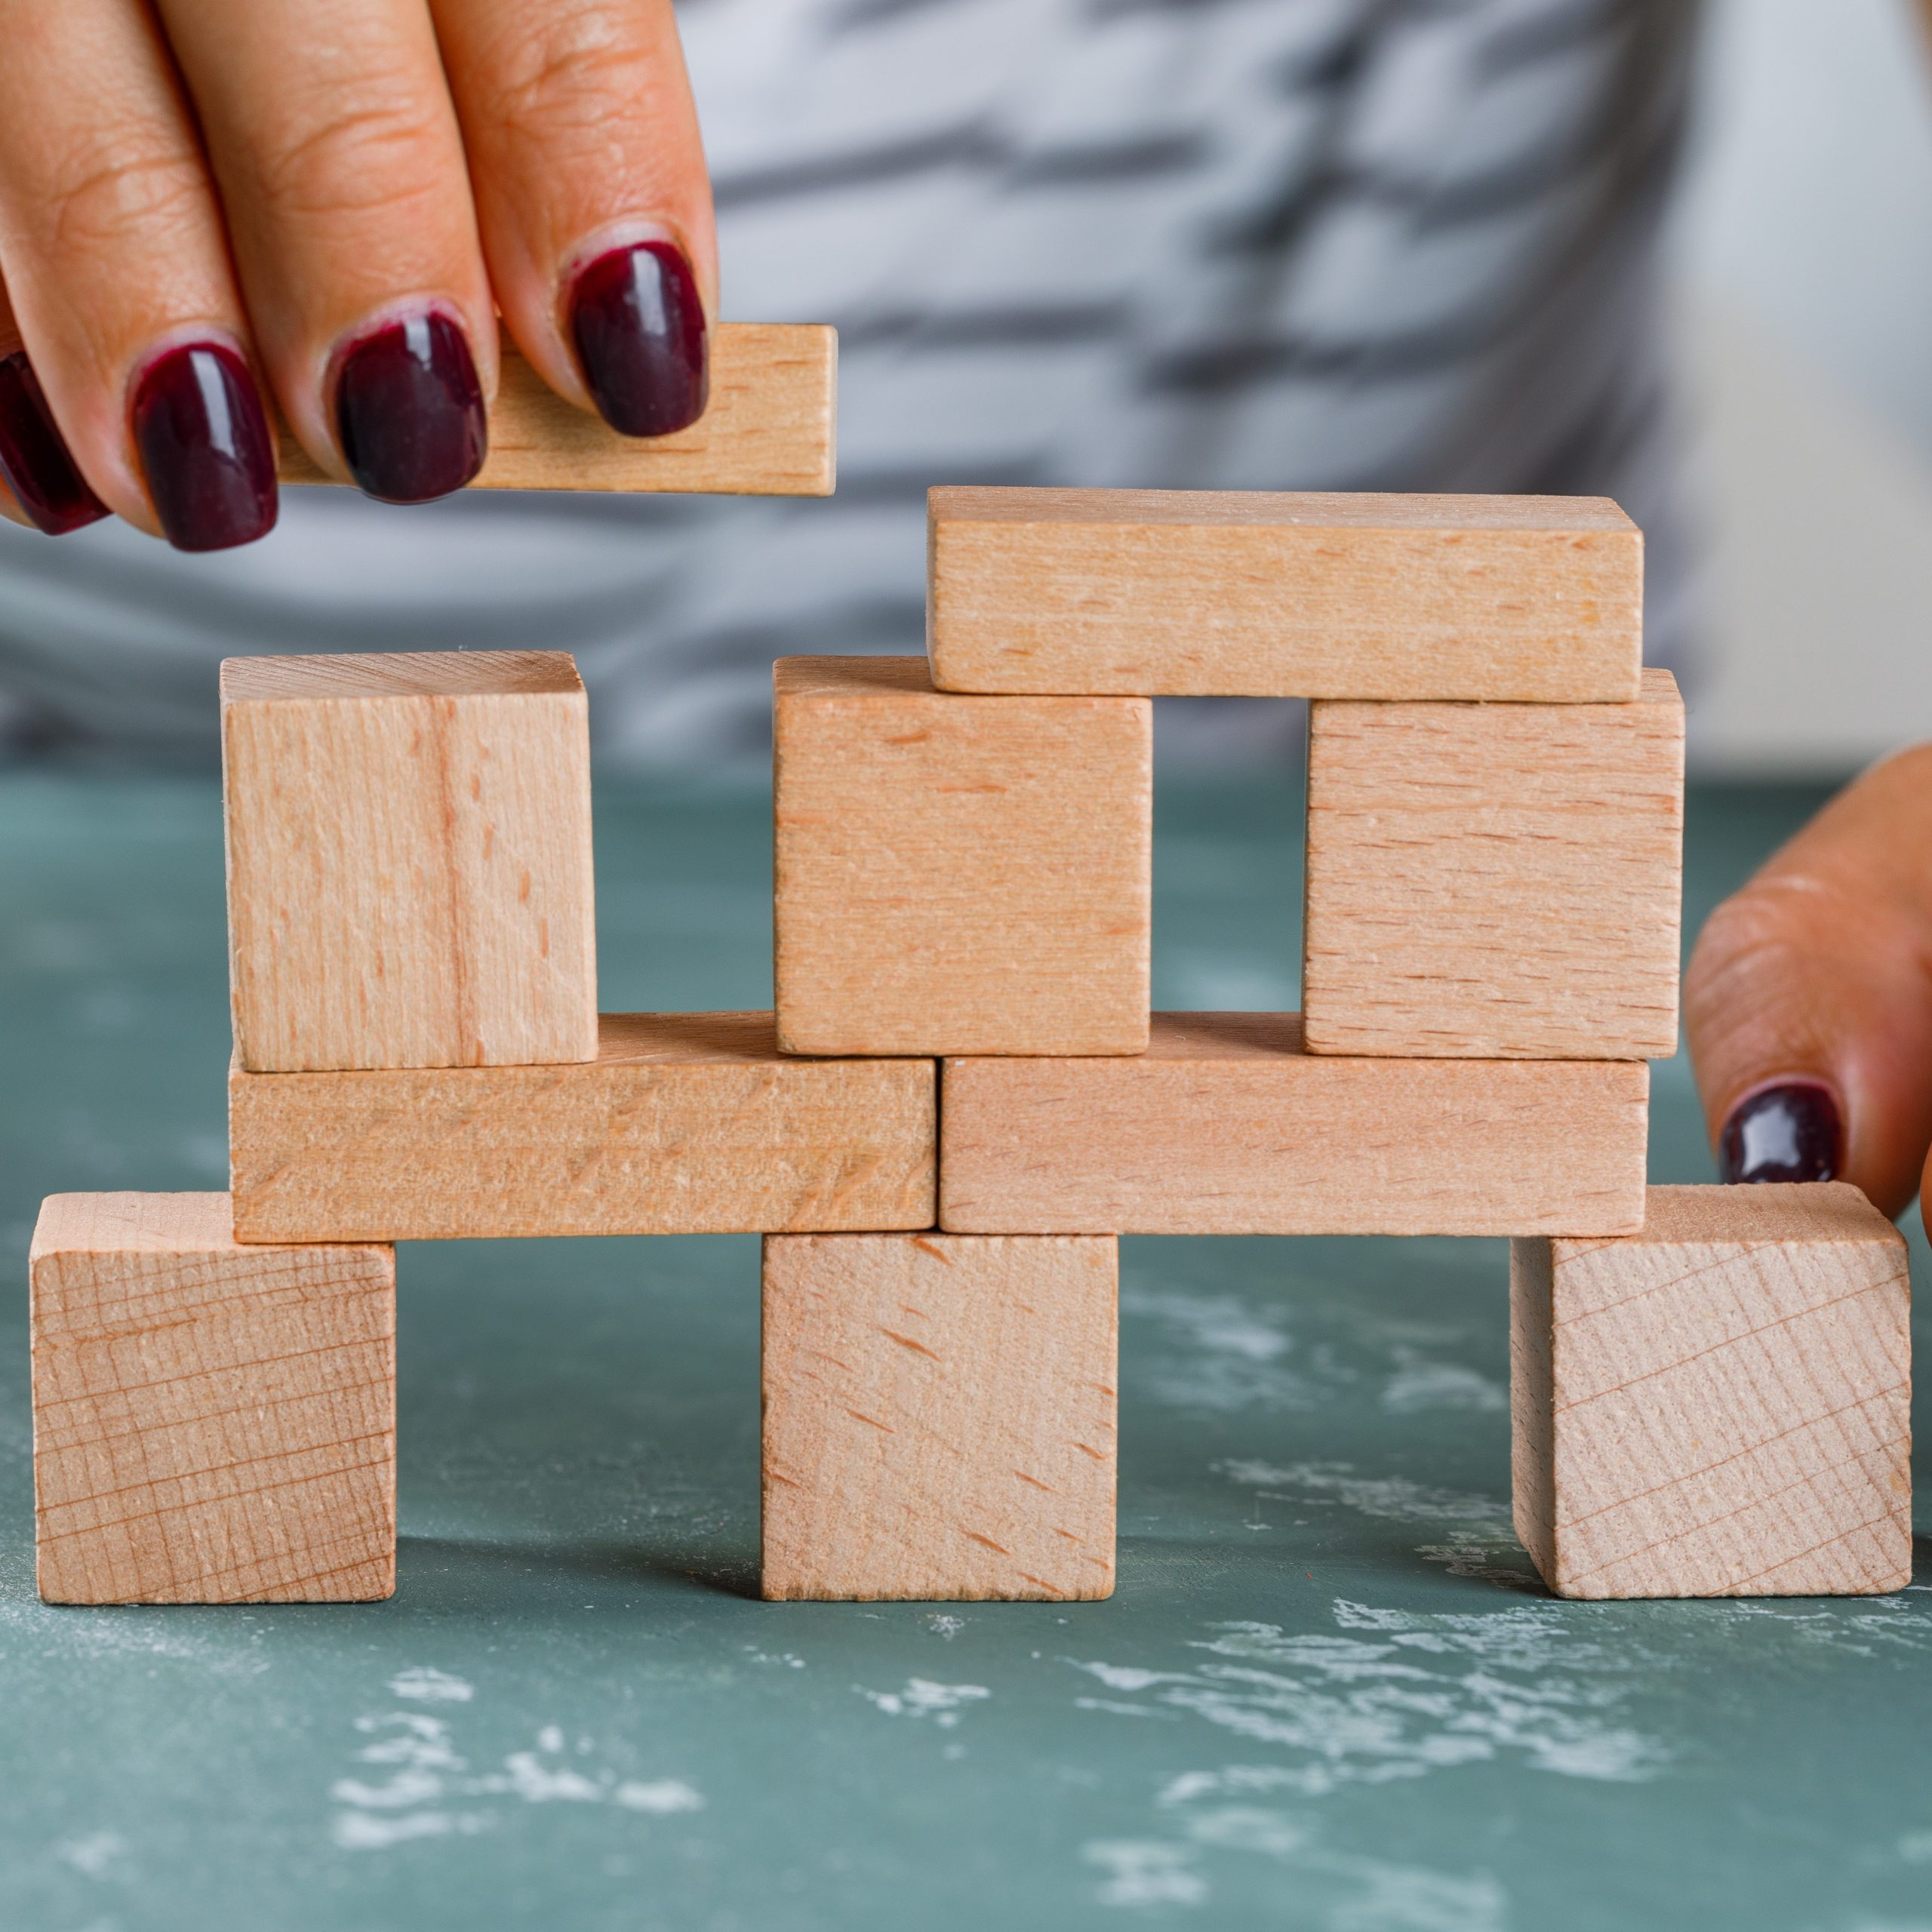 A hnad building a tower using blocks